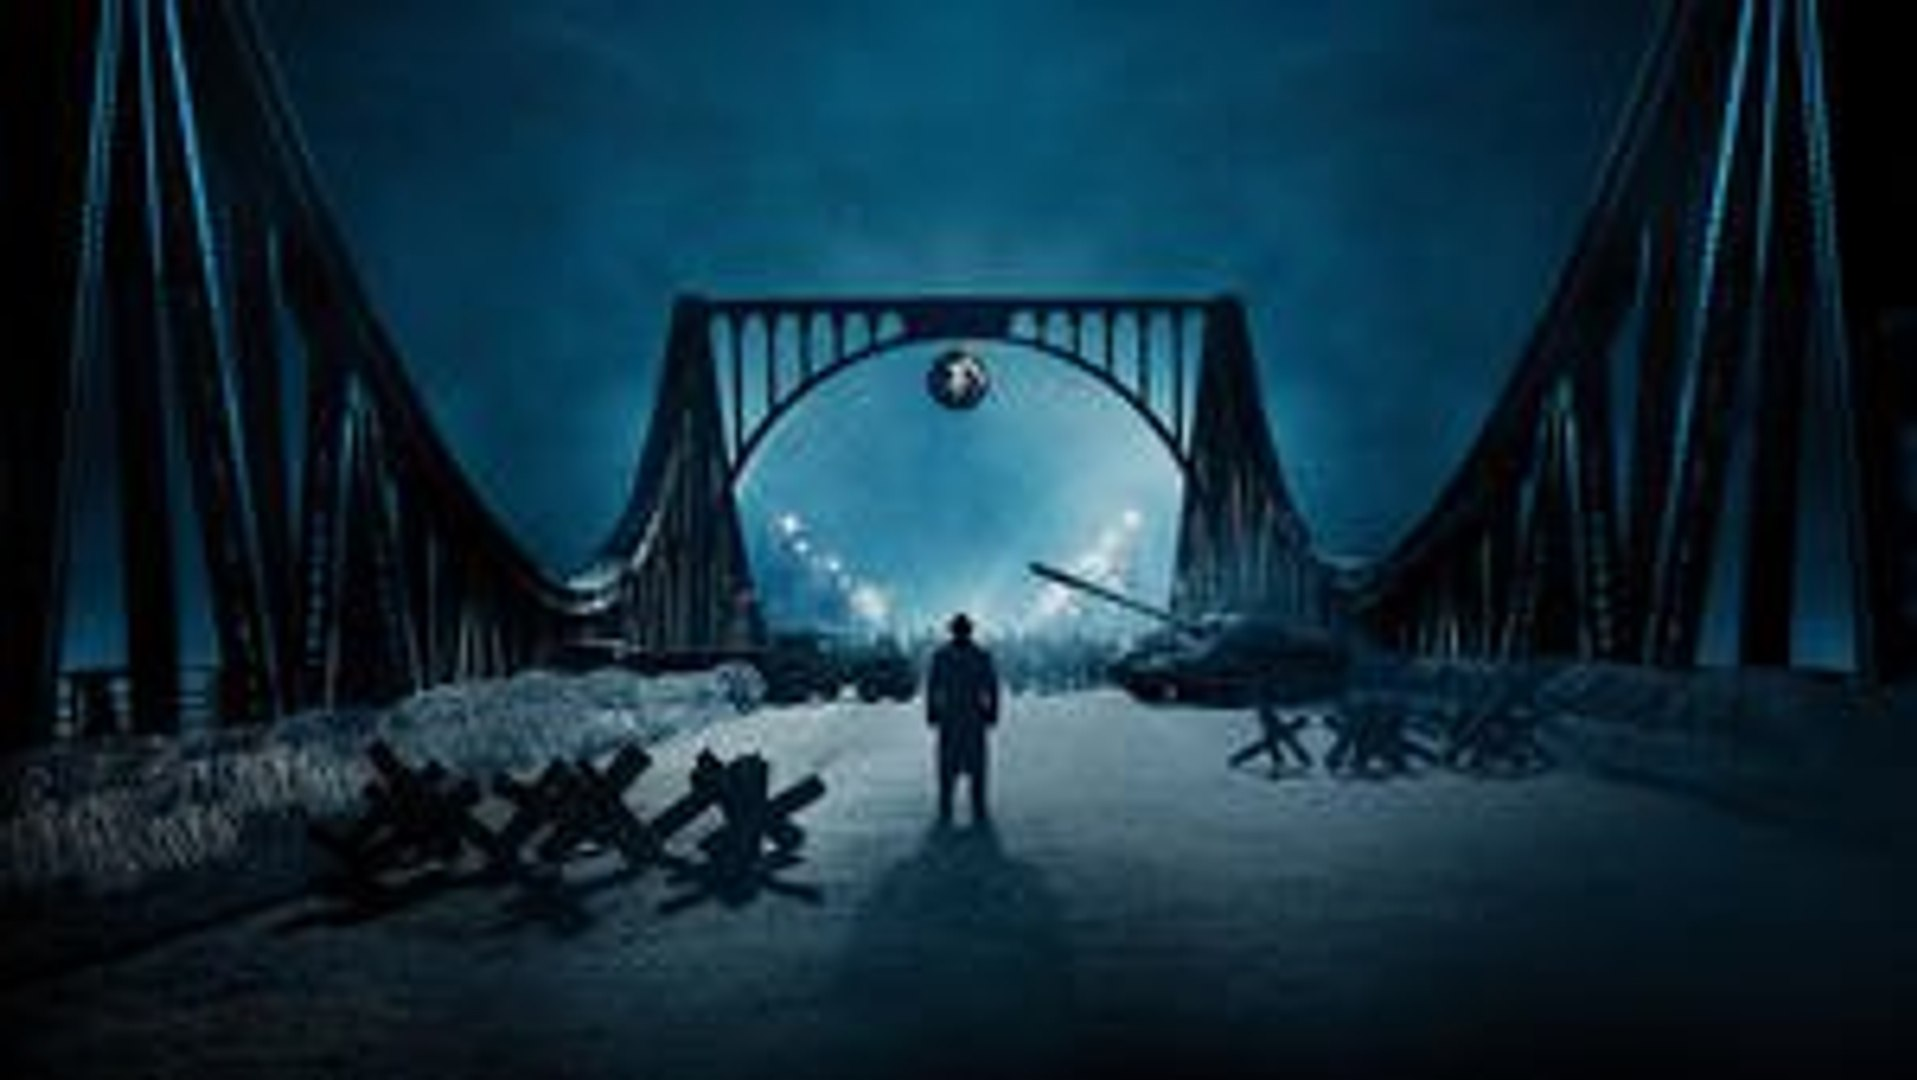 Le Pont Des Espions Film Complet Vostfr Streaming Hd 2015